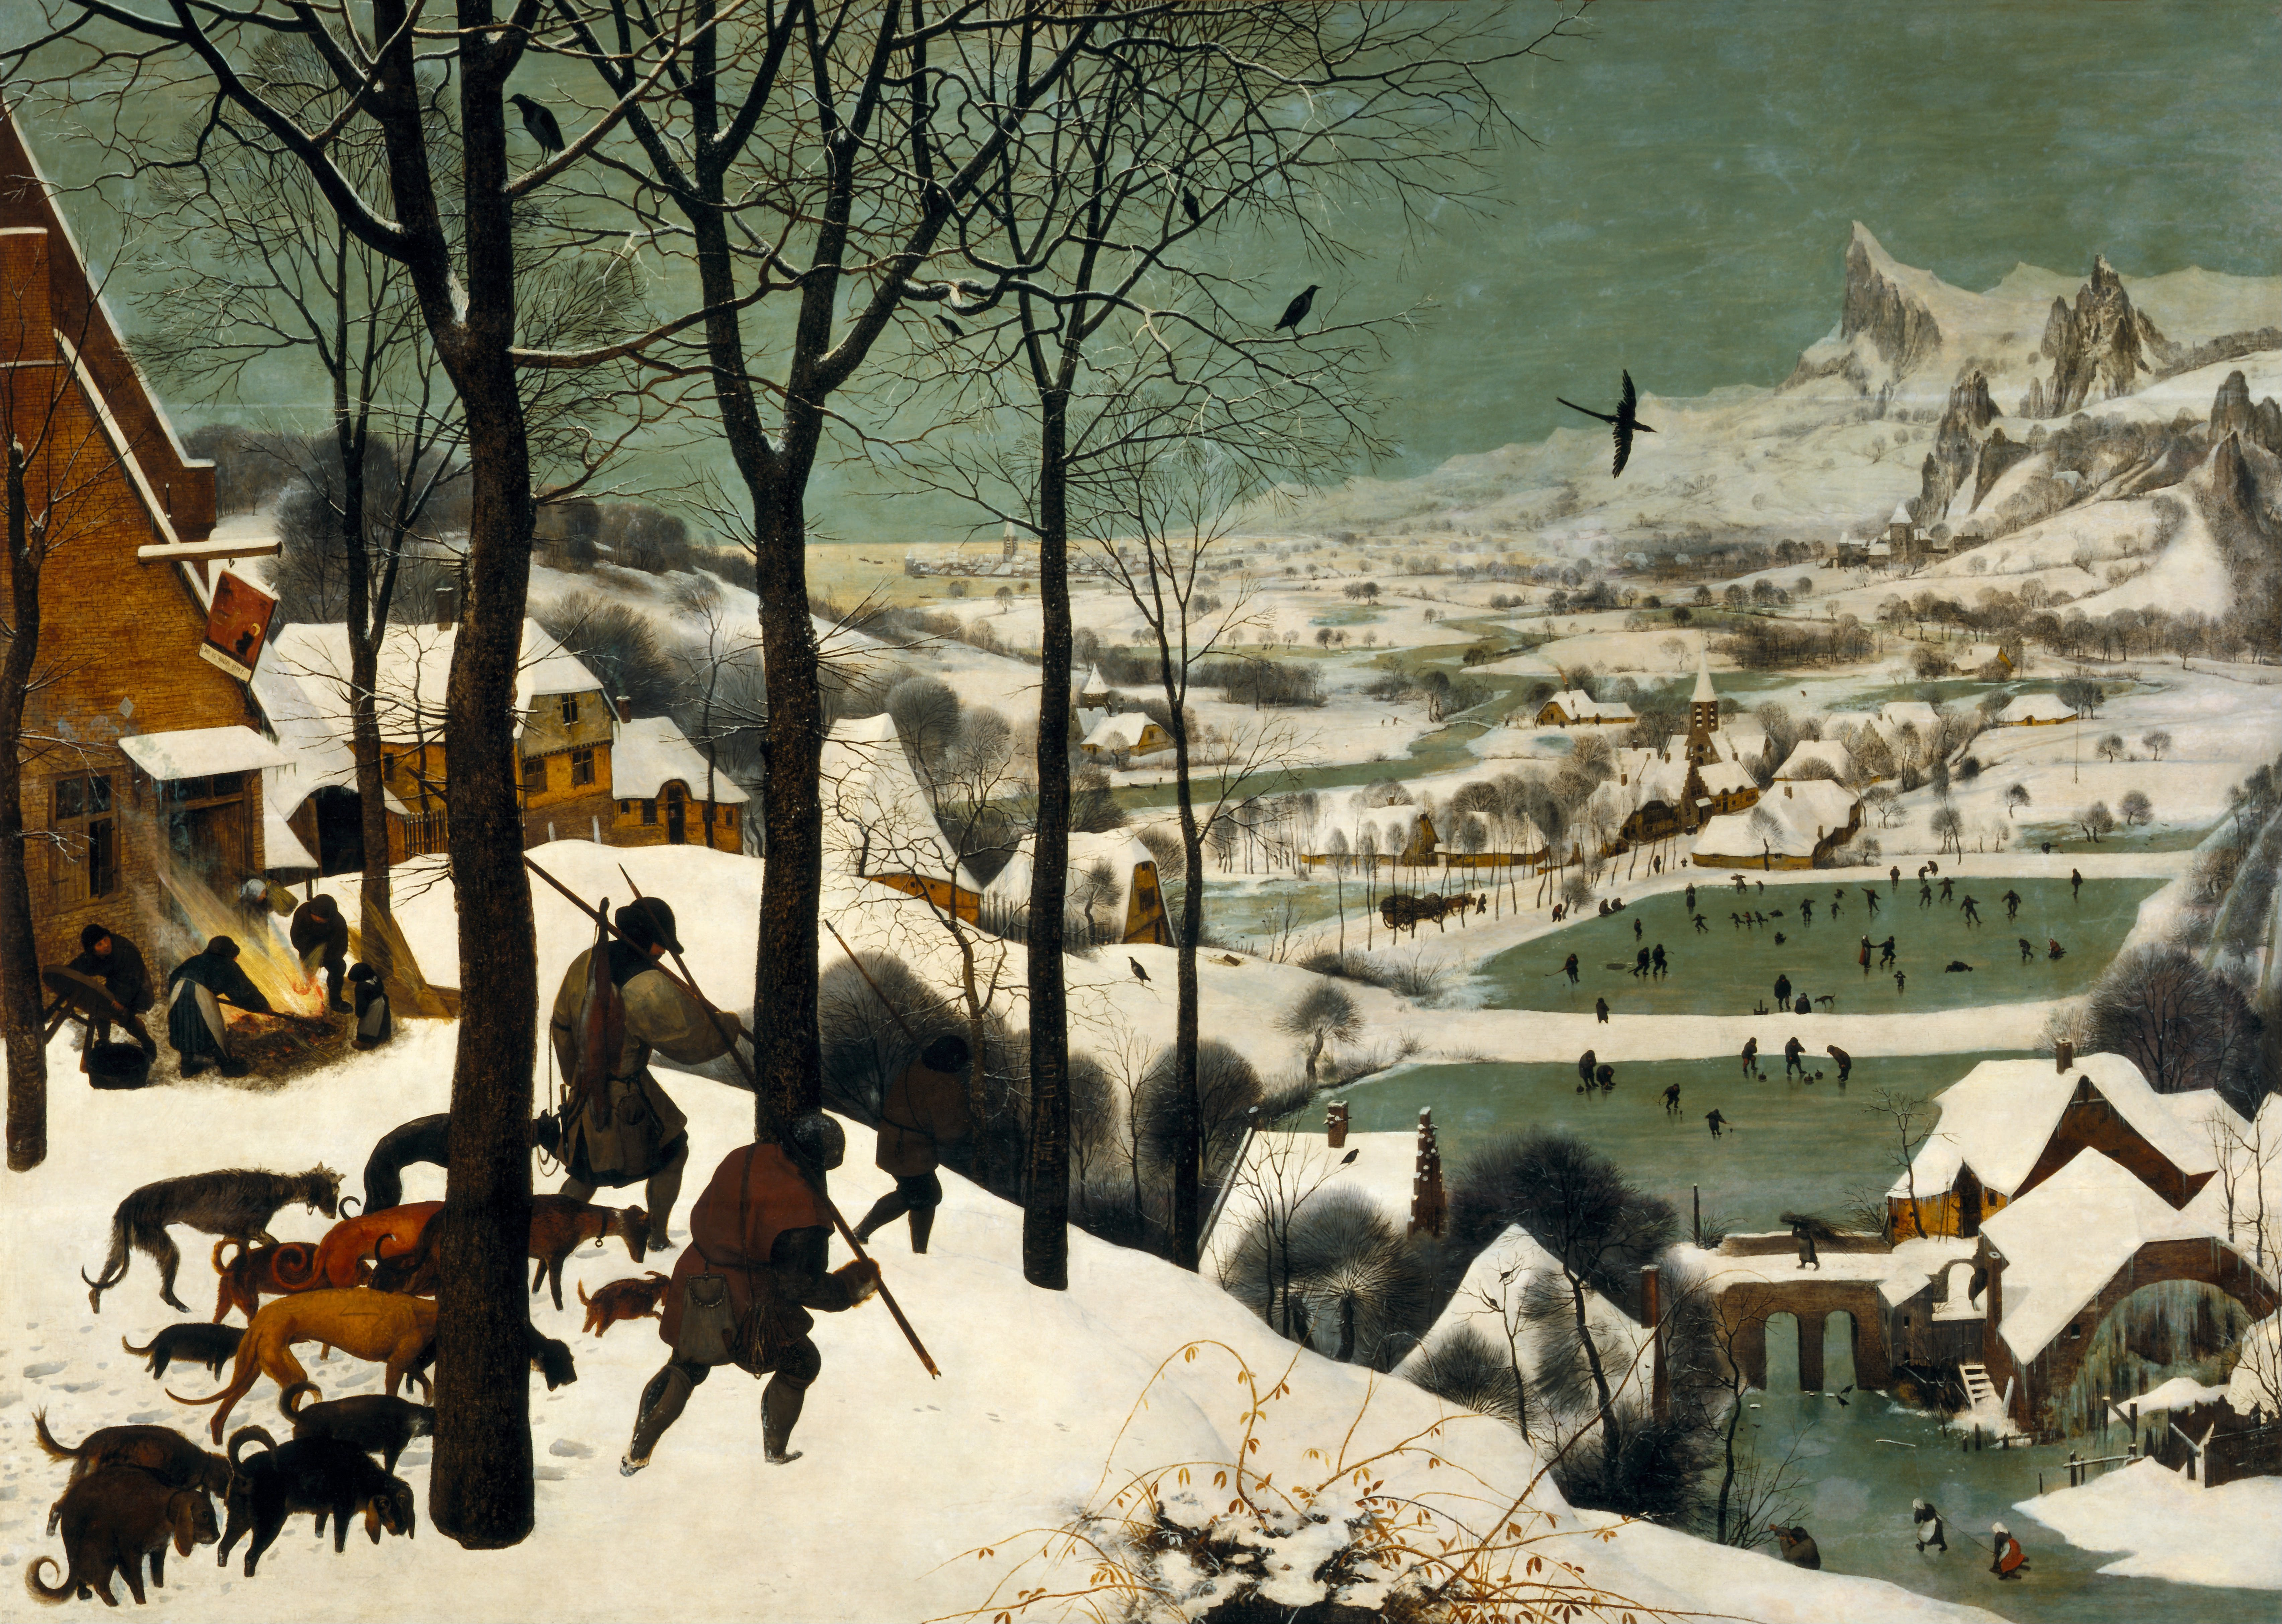 Pieter the Elder Bruegel, The Hunters in the Snow (Winter) 1565